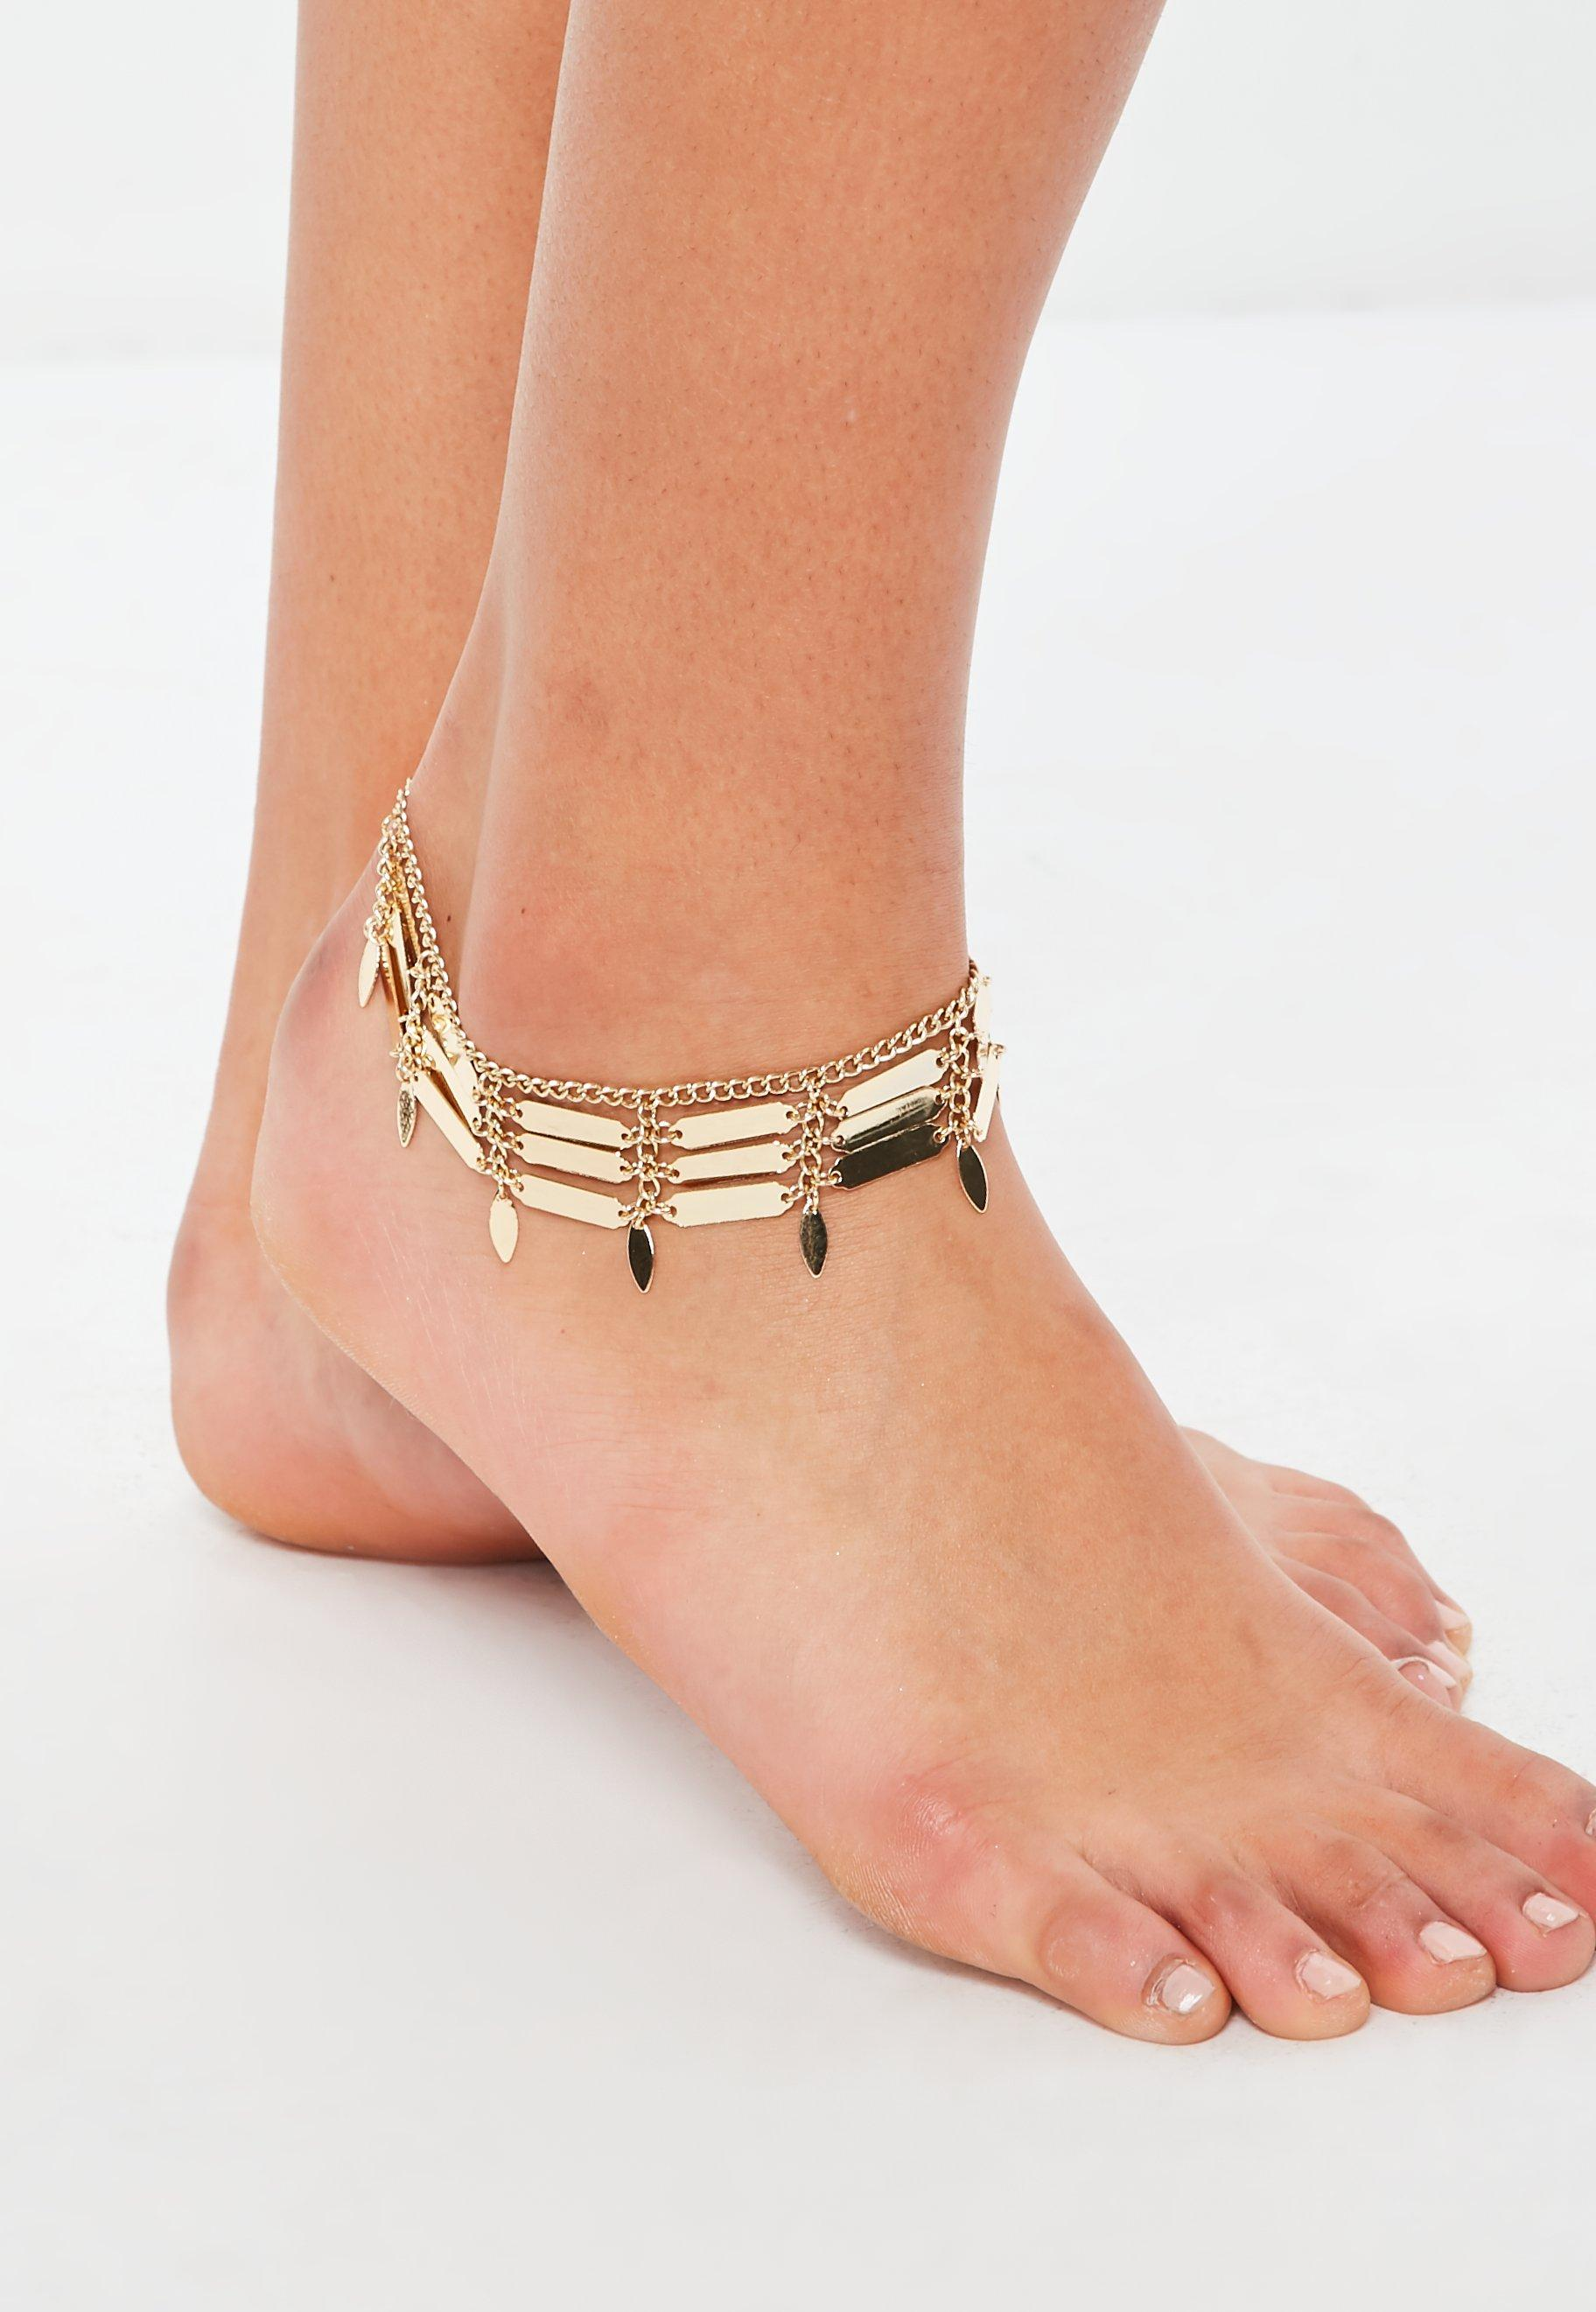 now only anklets pin buy gorjana gold it anklet bracelet